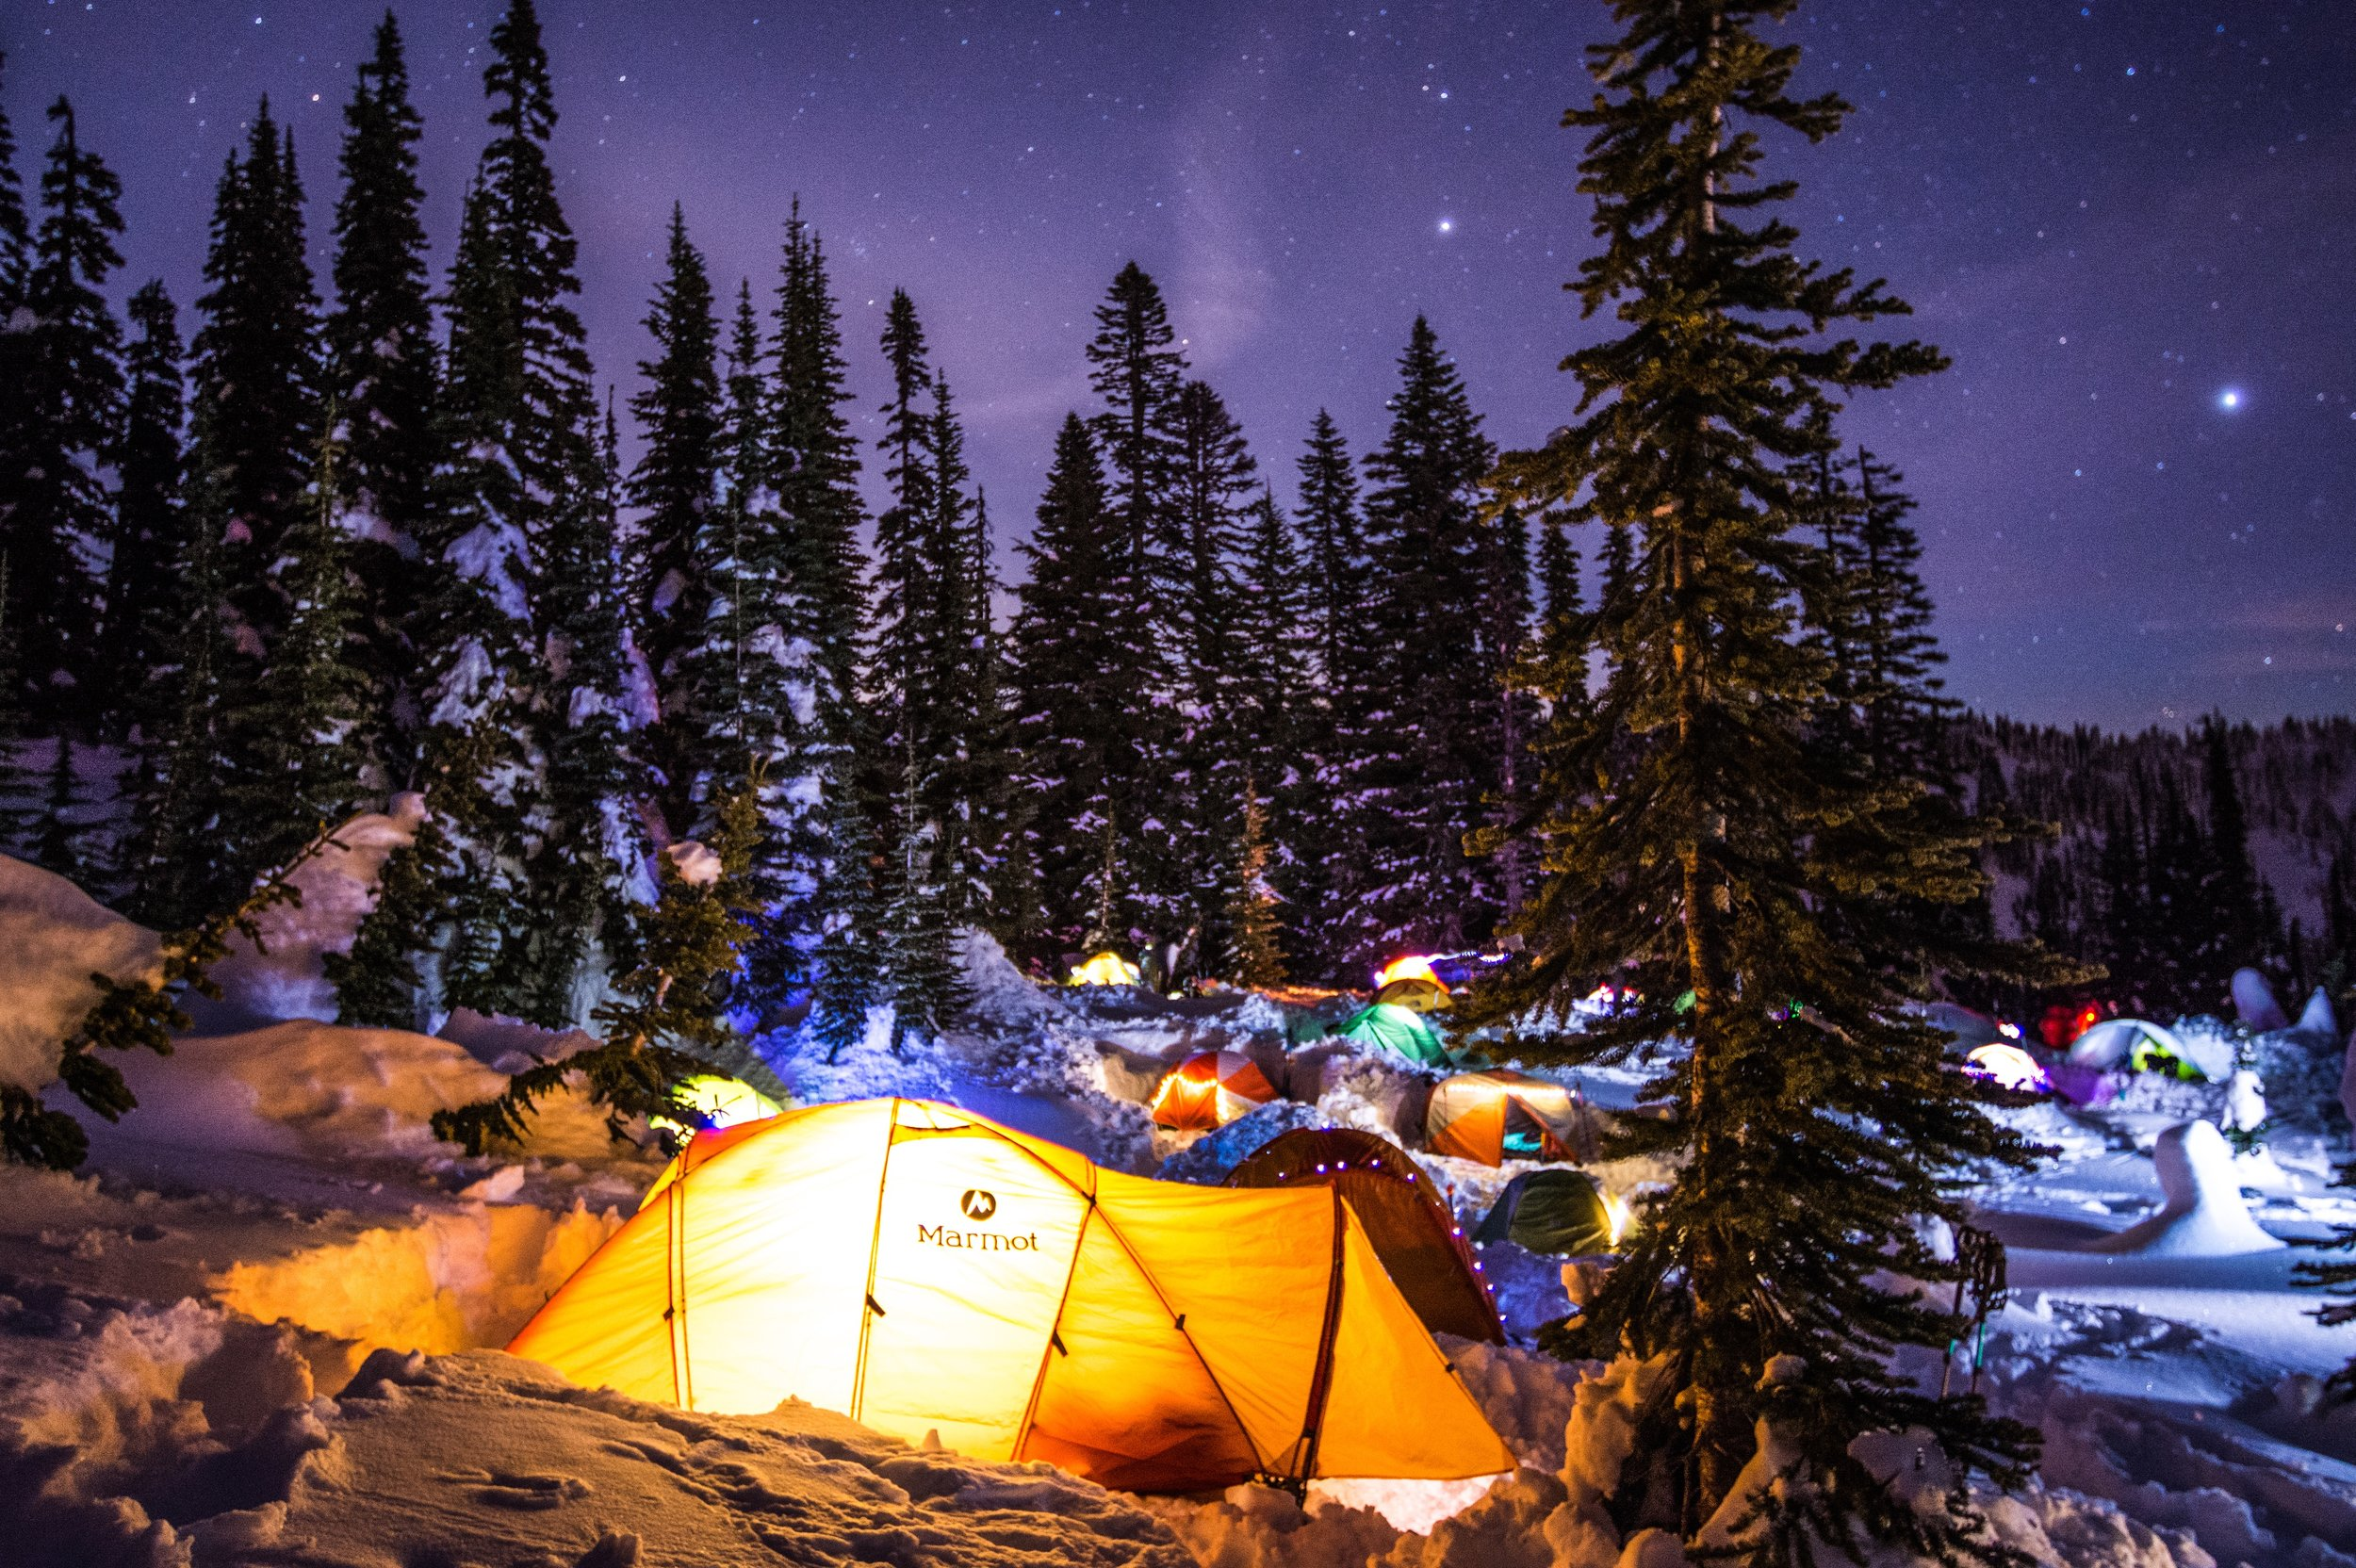 Snow camping in the backcountry and wondering how to poo? I got you!